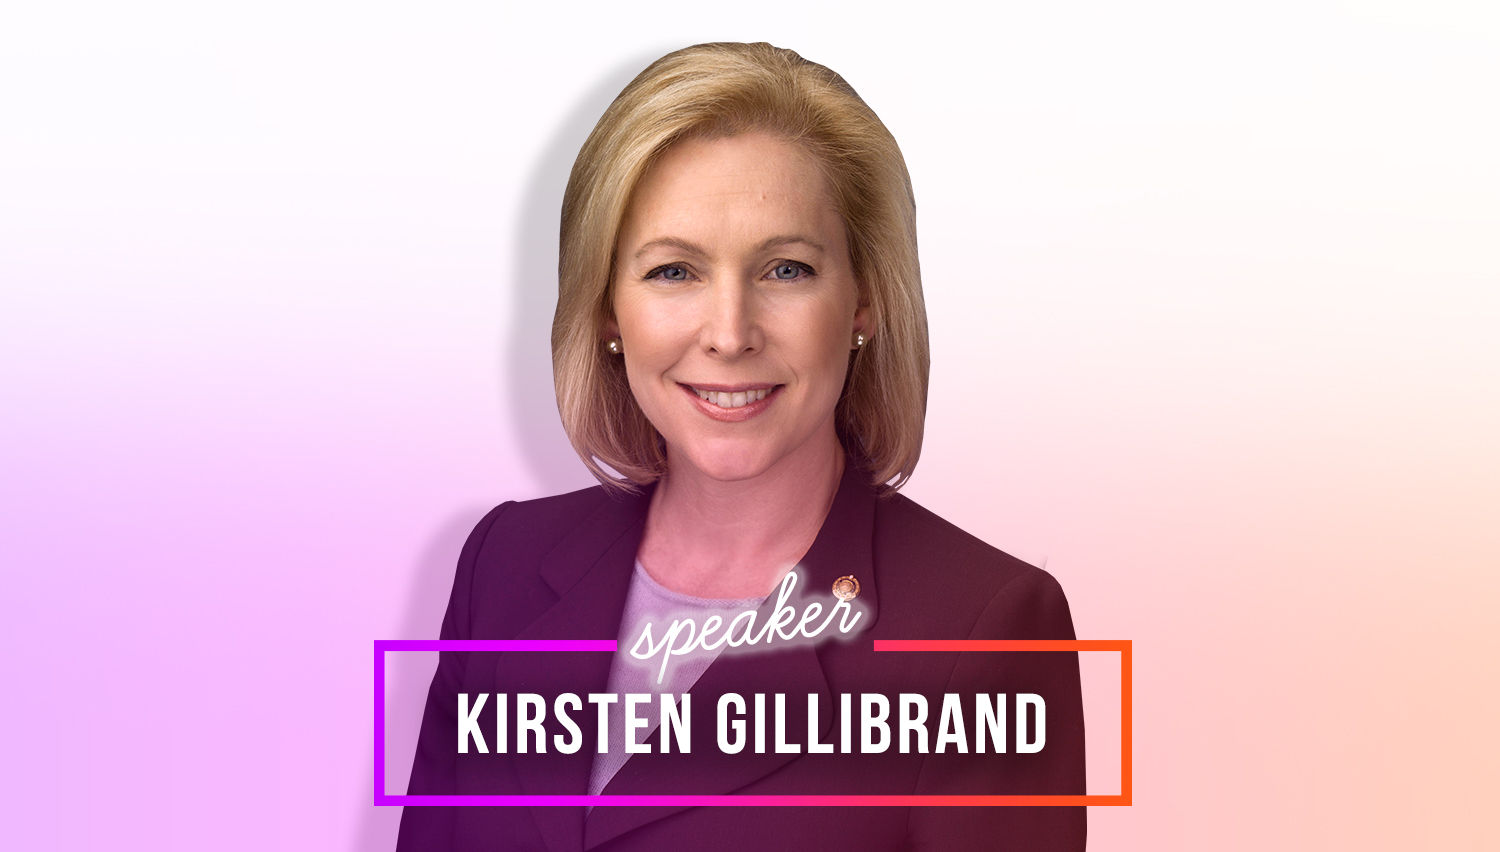 welcome our new york senator! - Hear Kirsten Gillibrand talk politics, economics and women's issues on the main stage at #BlogHer18 Creators Summit.